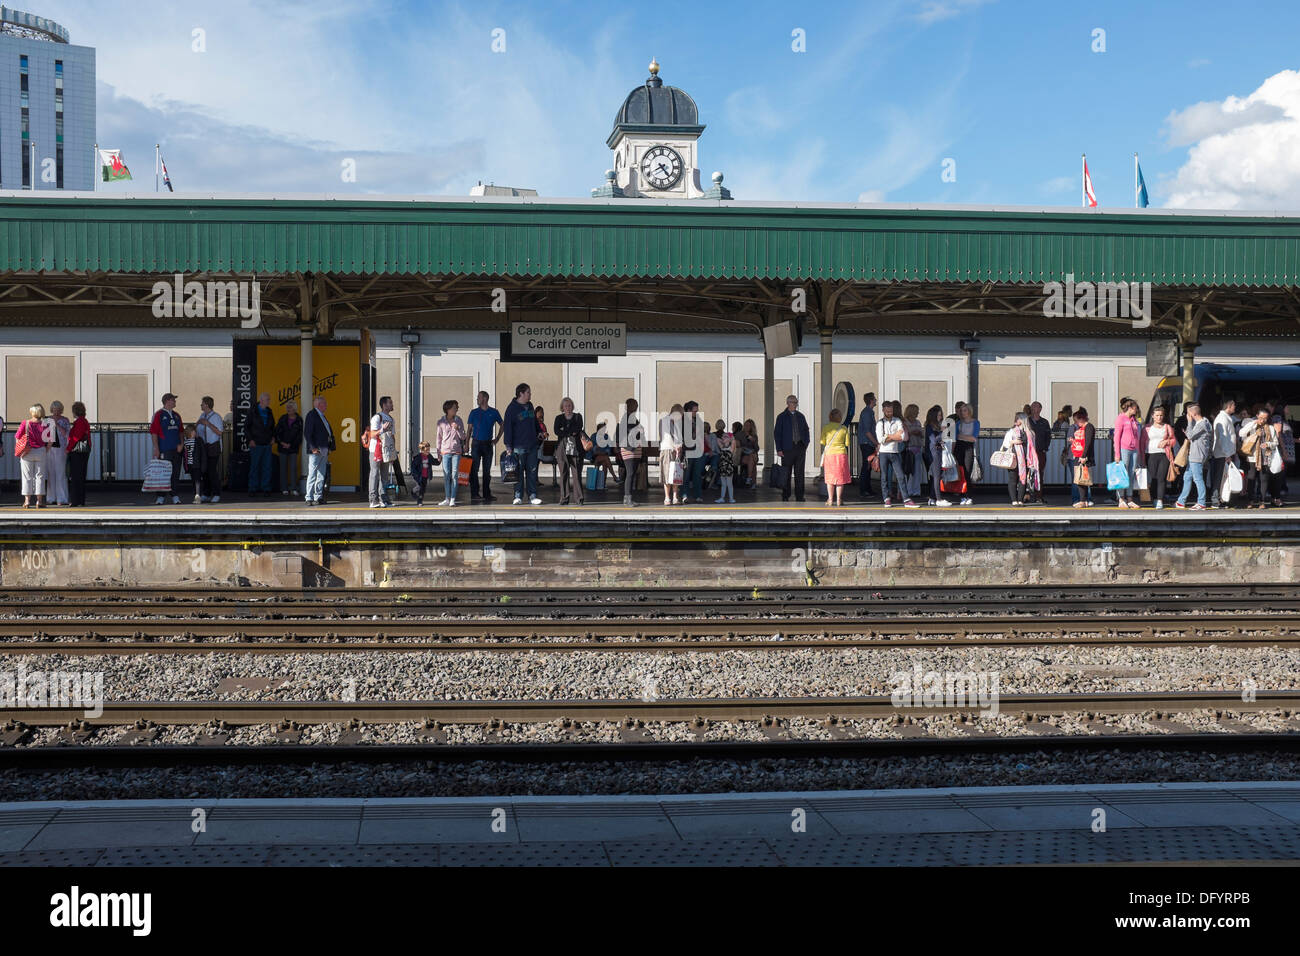 Crowded Platform at Cardiff Central Railway Station - Stock Image